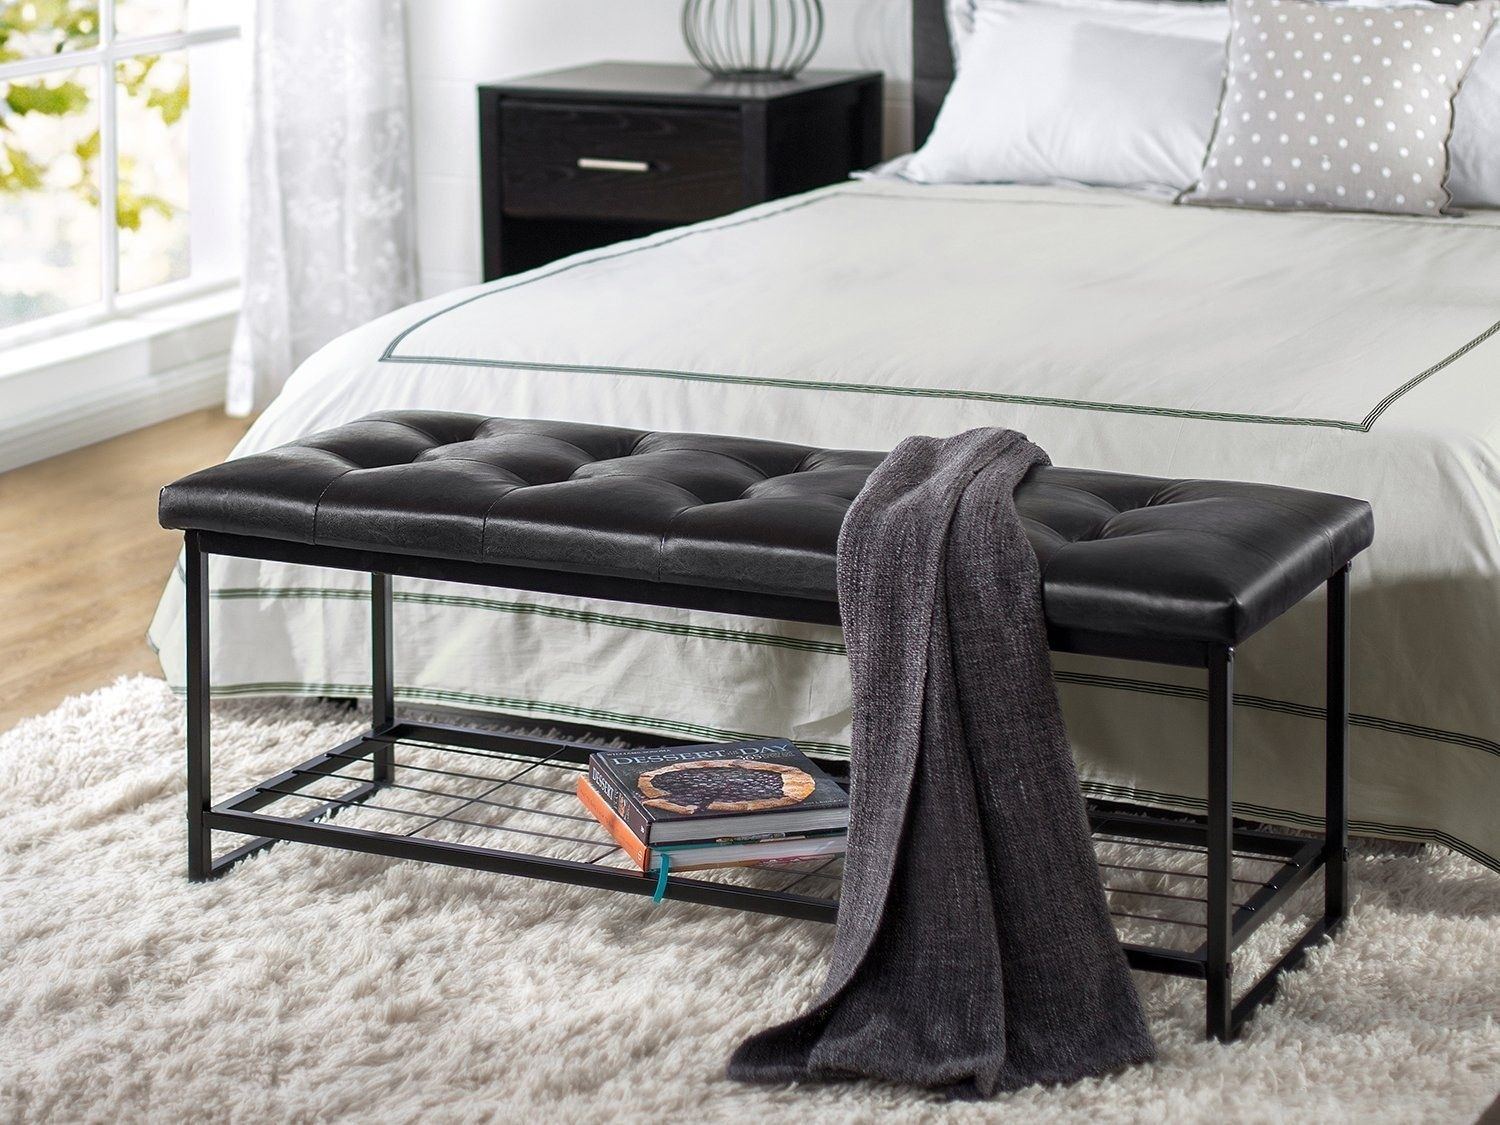 19 Creative Ways To Transform Your Bed Bed Bench Storage Bench With Storage Bed Bench